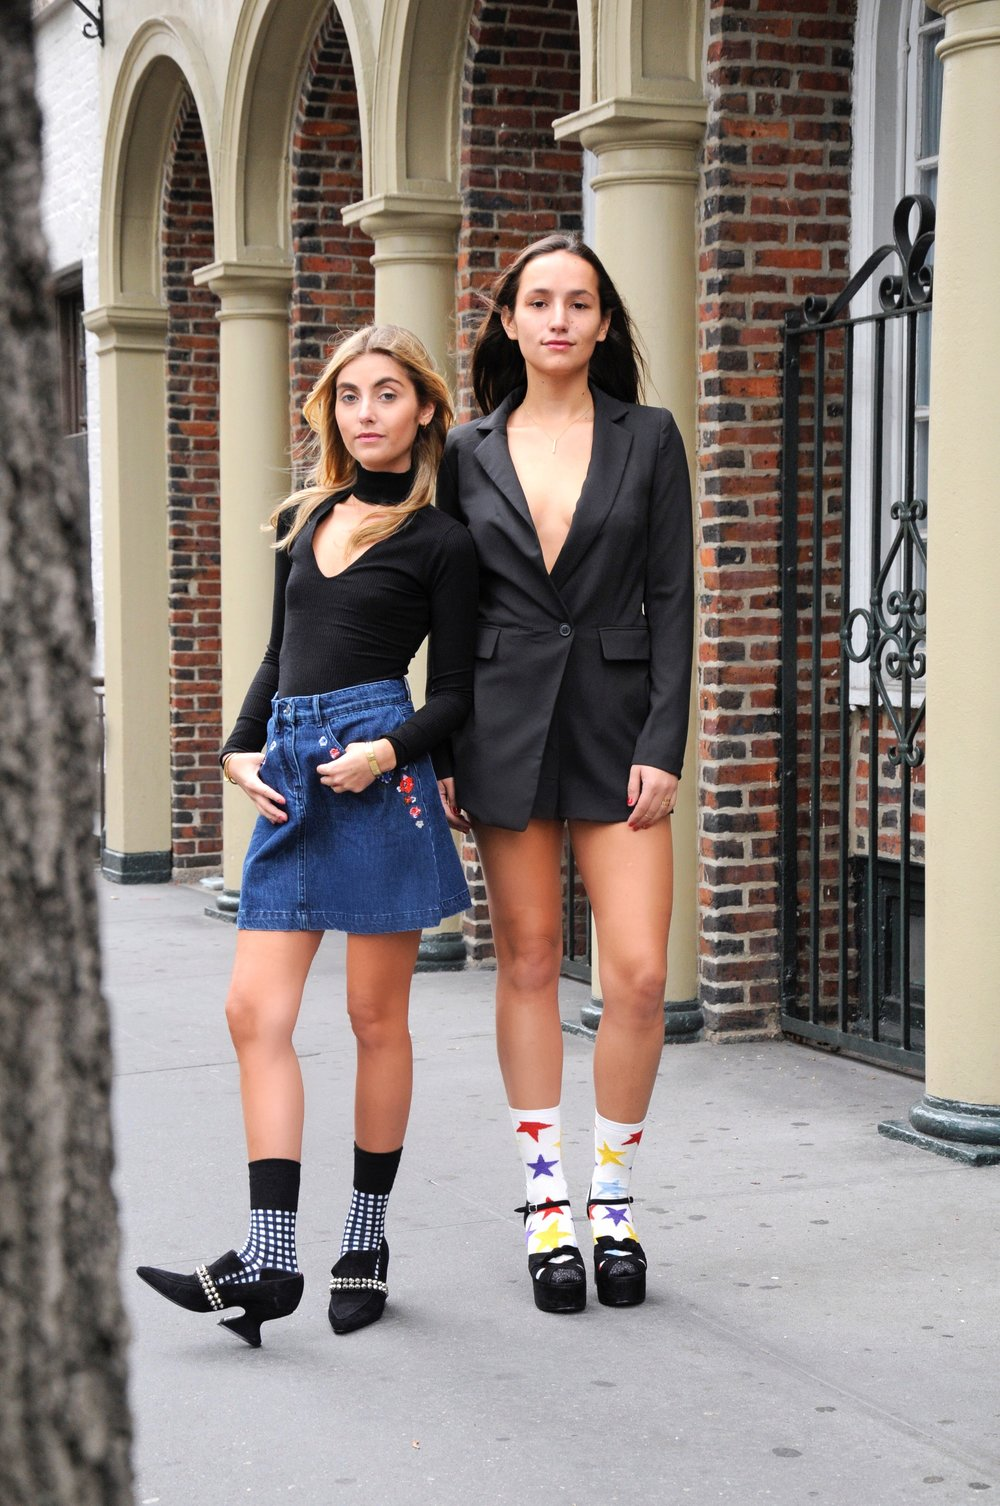 SOPHIE AND CHARLOTTE YIN 2MY YANG SISTER FASHION BLOGGERS SOCKS TREND